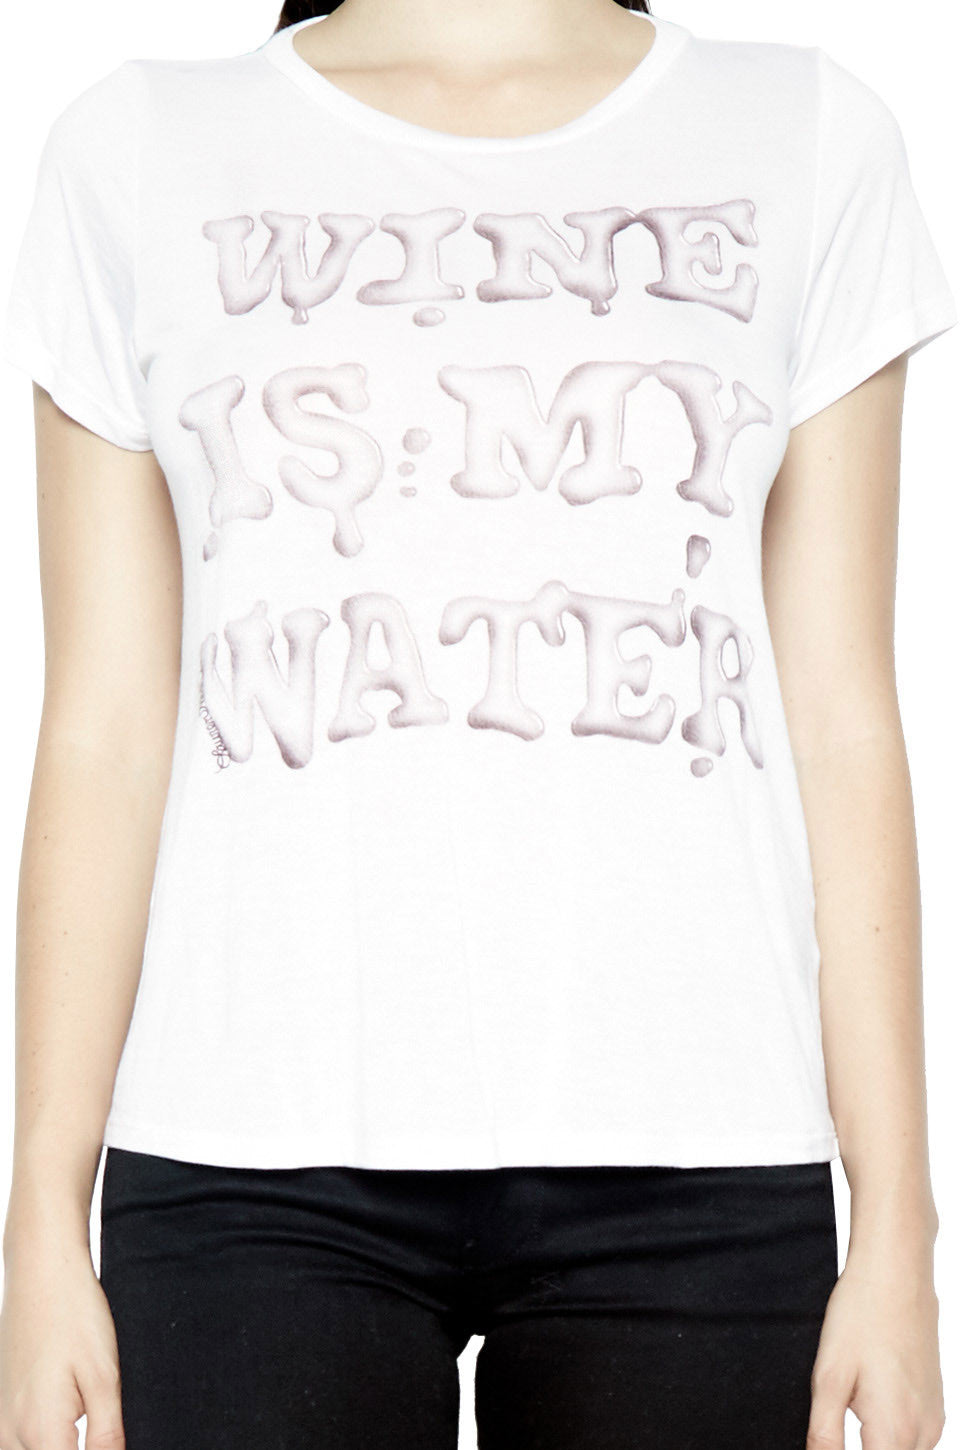 Lauren Moshi Women's Janie Wine is My Water Classic S/S Tee - White